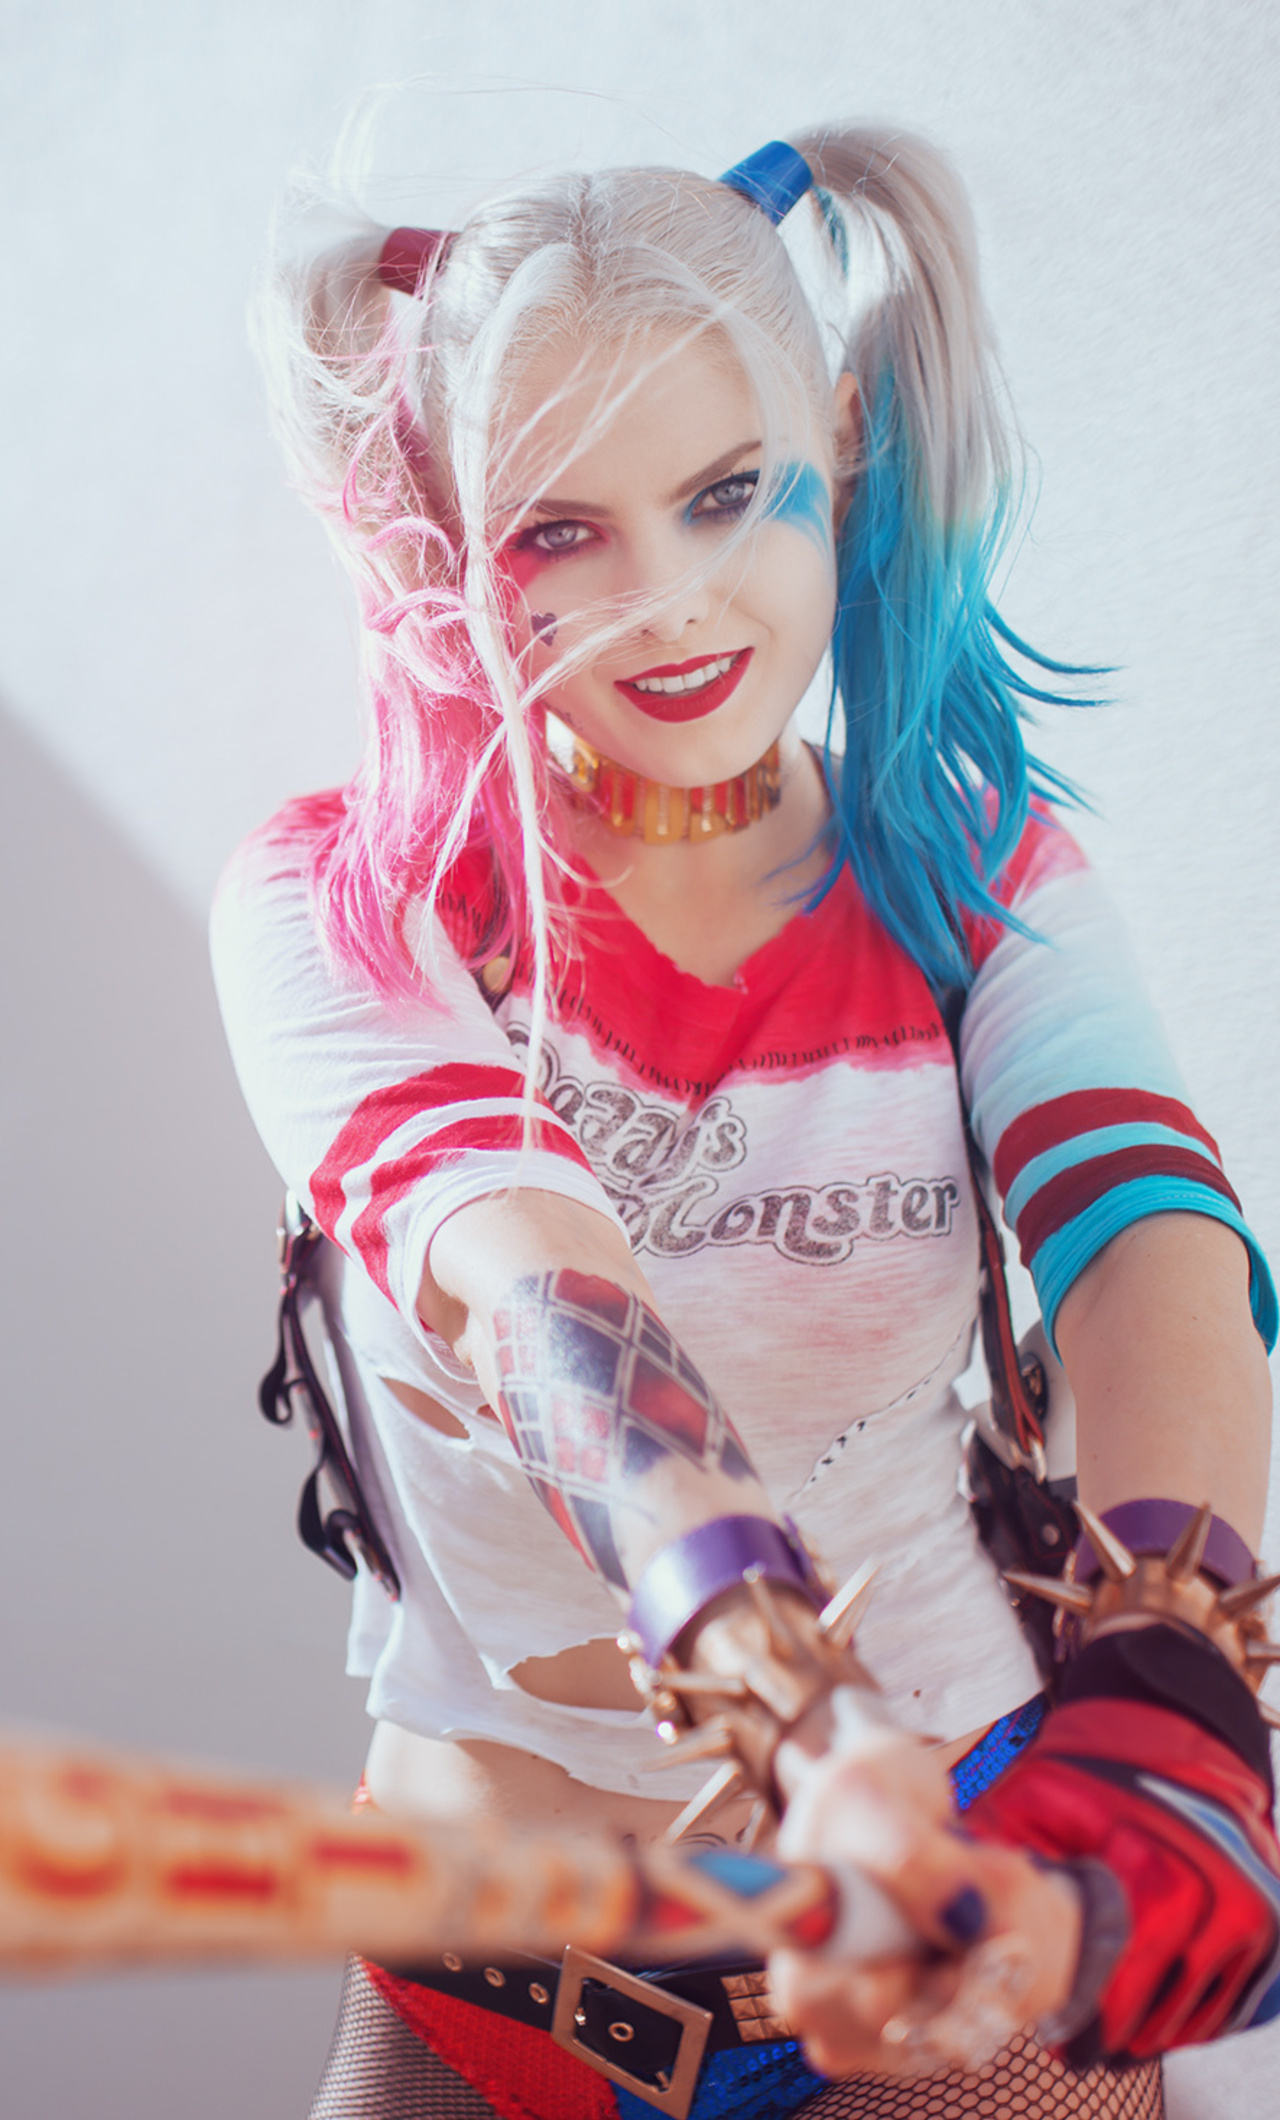 1280x2120 Harley Quinn Cosplay Hd Iphone 6 Hd 4k Wallpapers Images